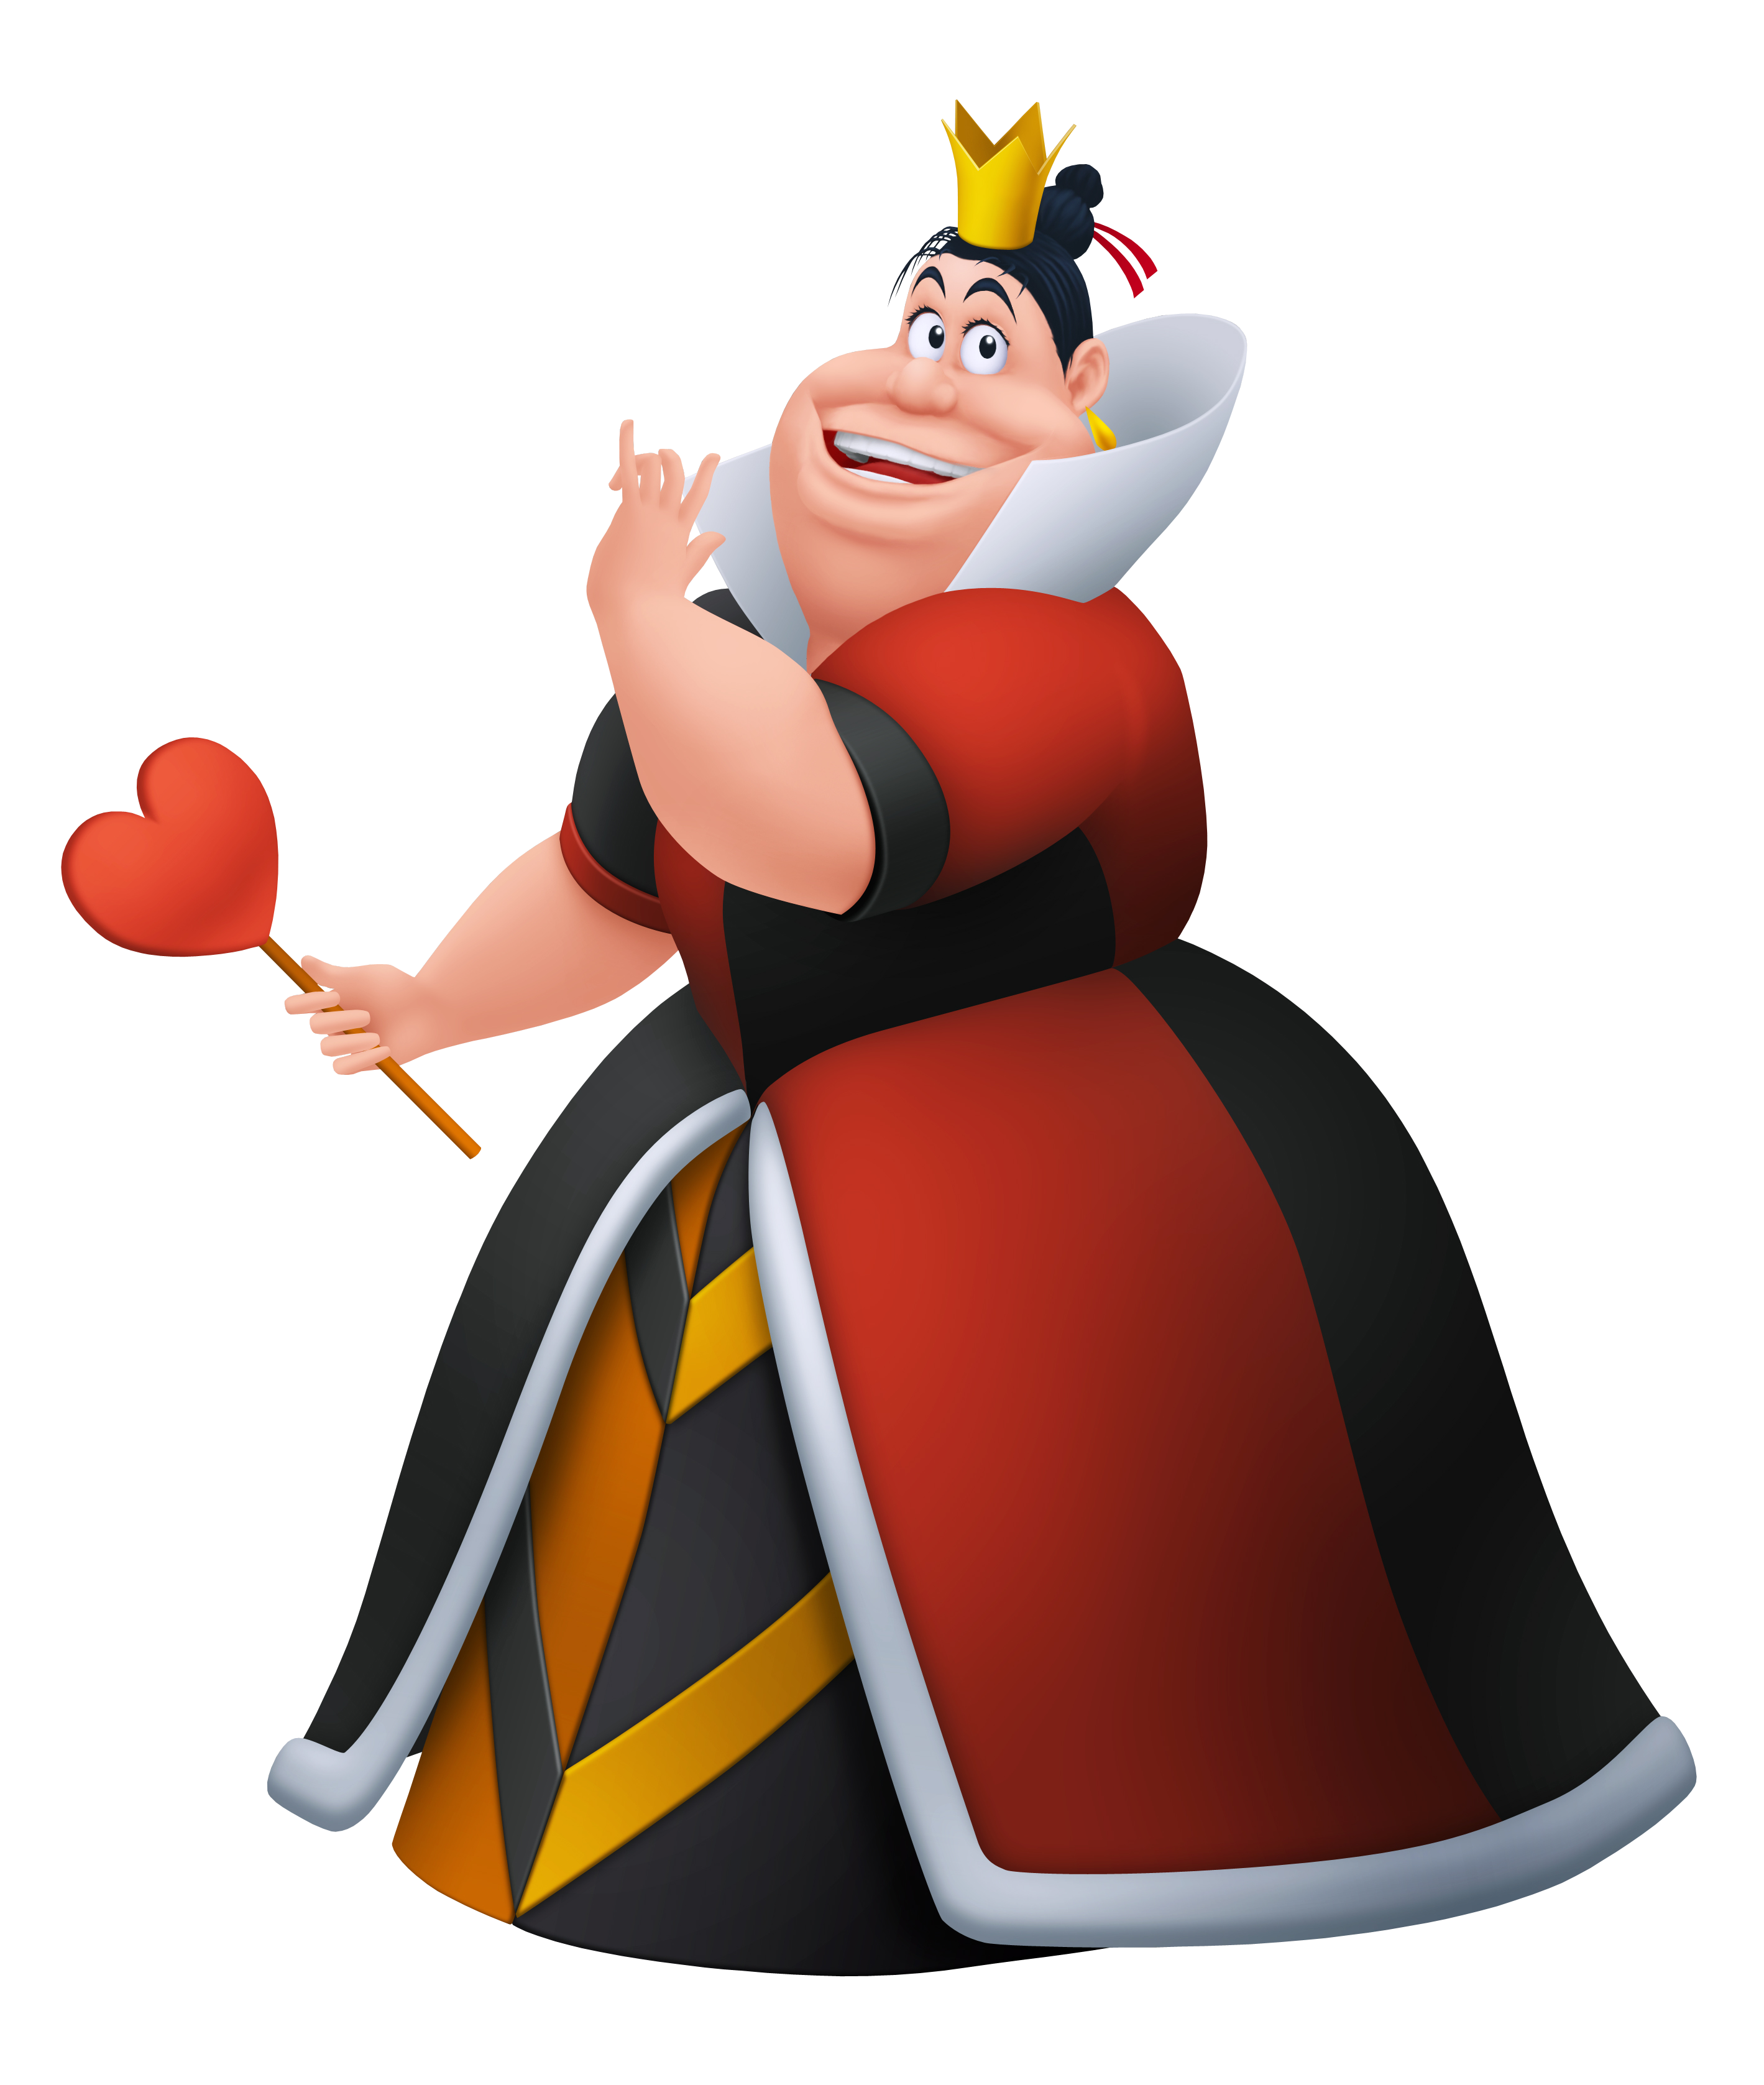 Queen of hearts png. Image khrec kingdom wiki